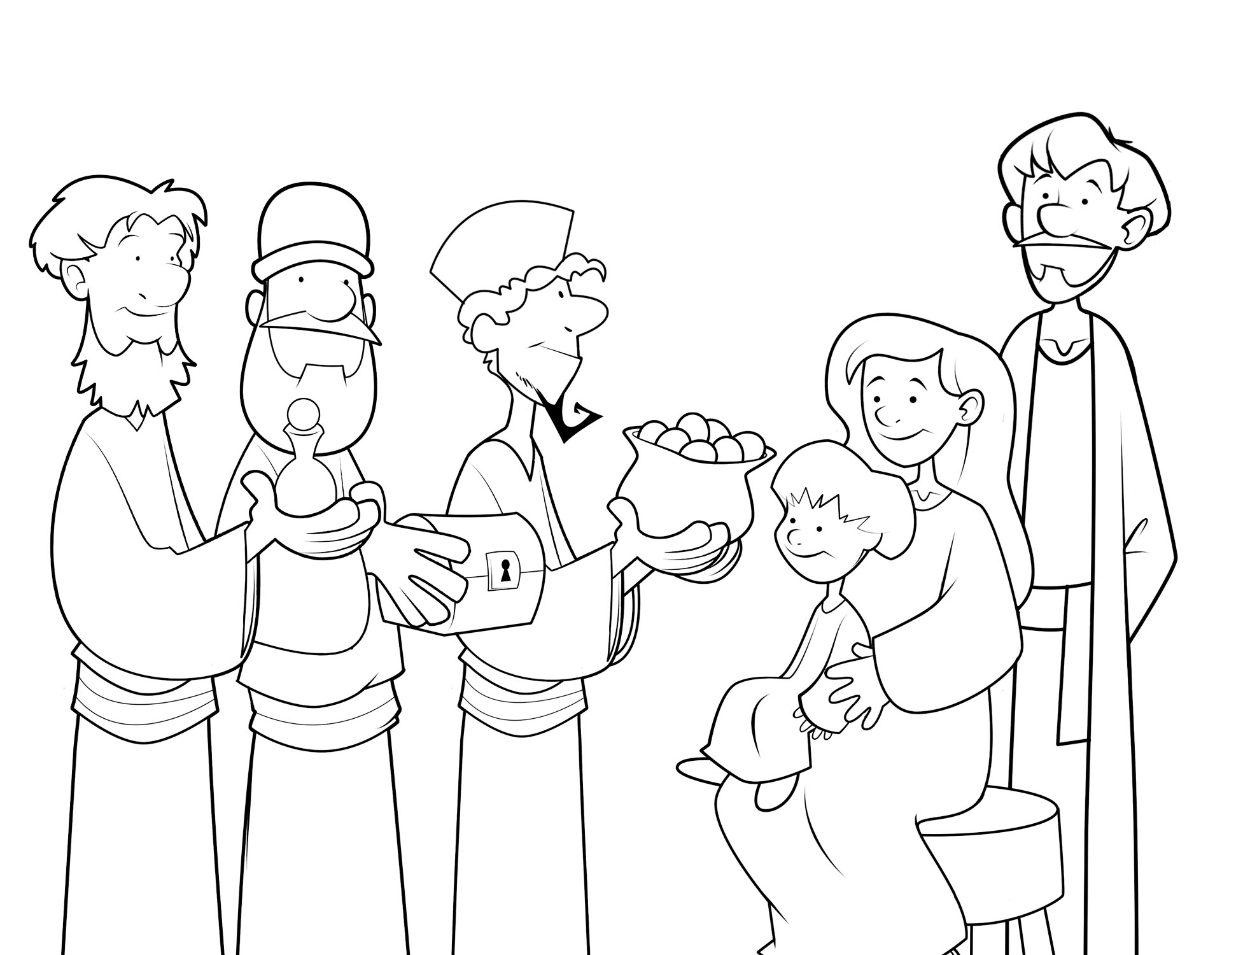 gold frankincense and myrrh coloring pages | Biblical magi clipart - Clipground